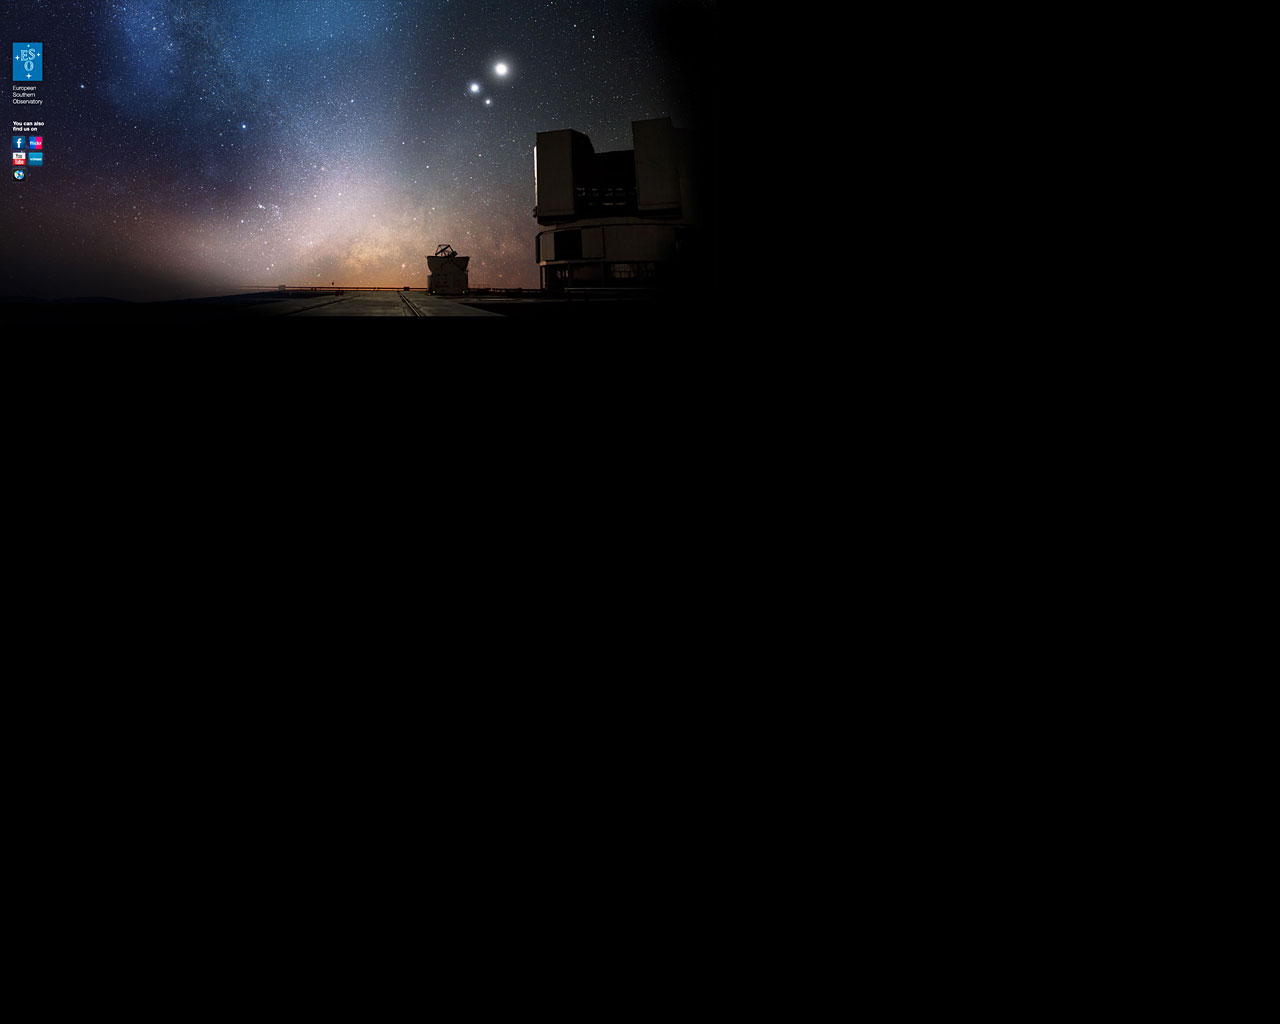 ESO Background image for MySpace